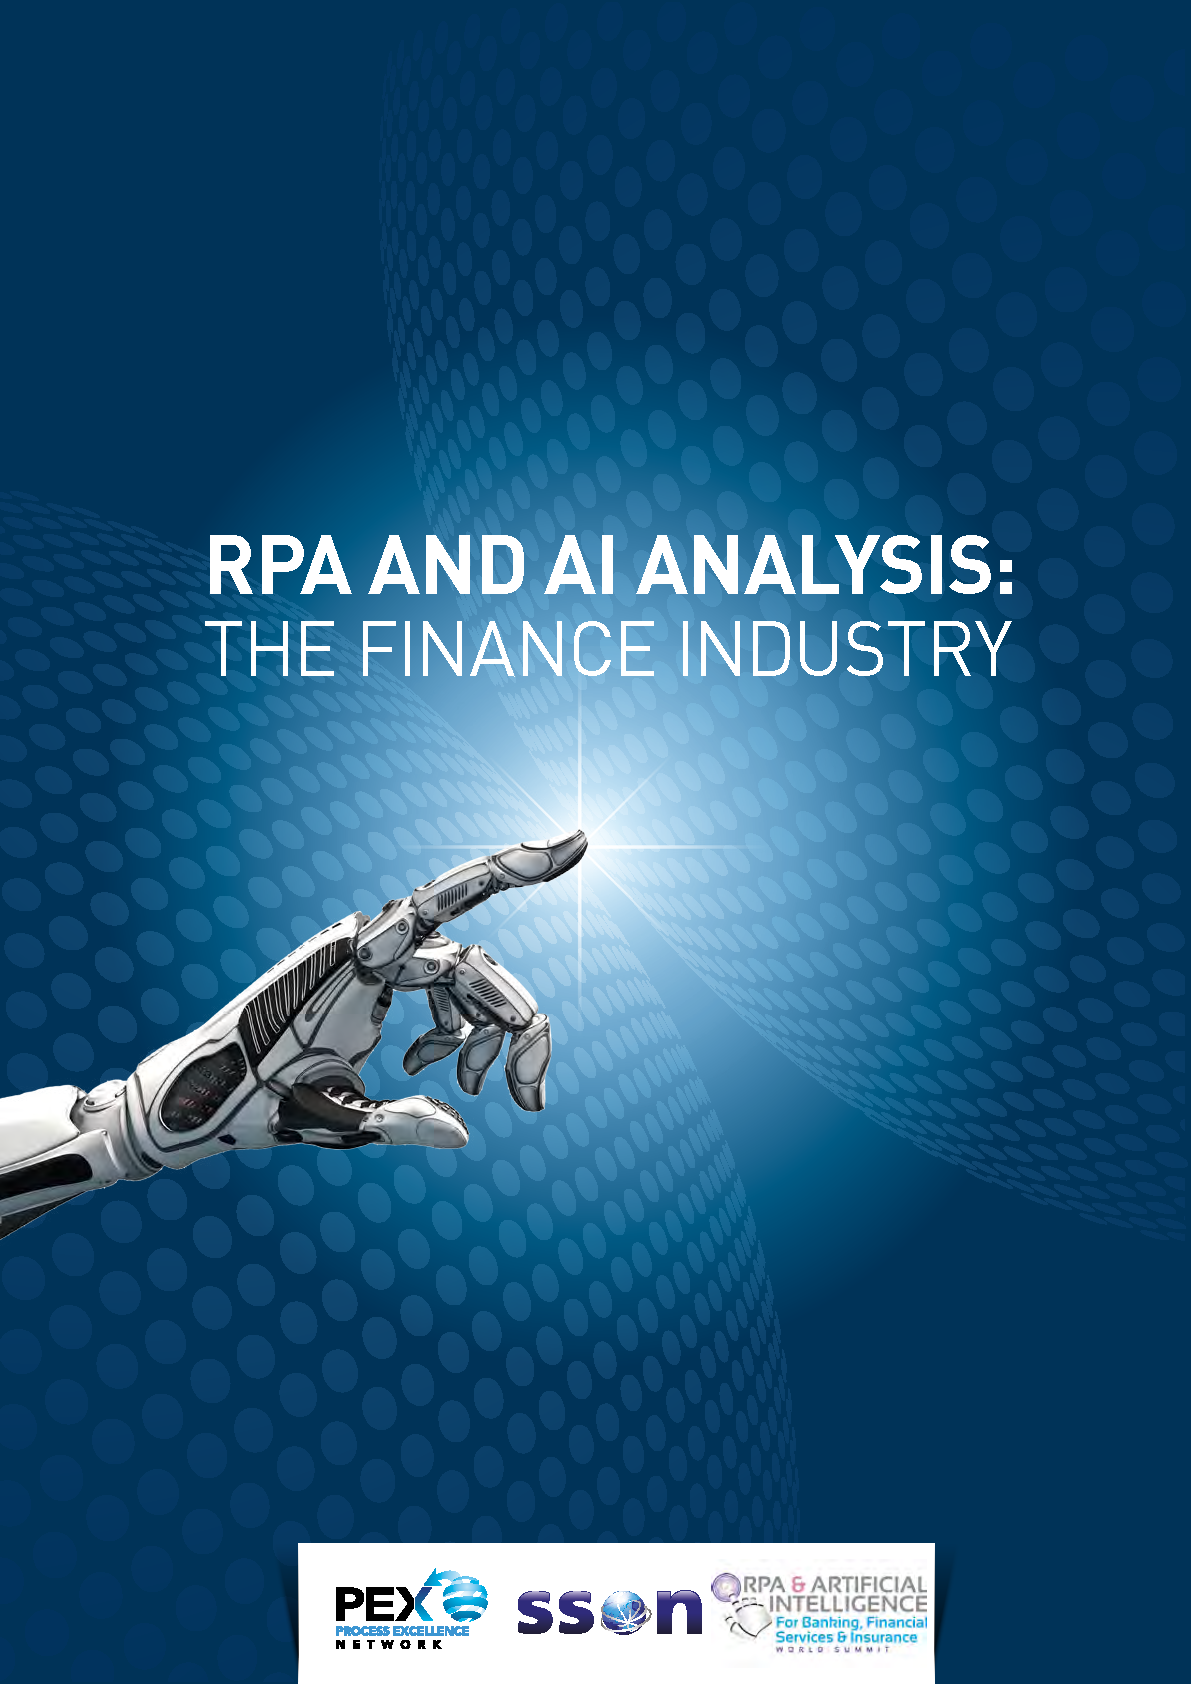 RPA and AI Analysis: The Finance Industry